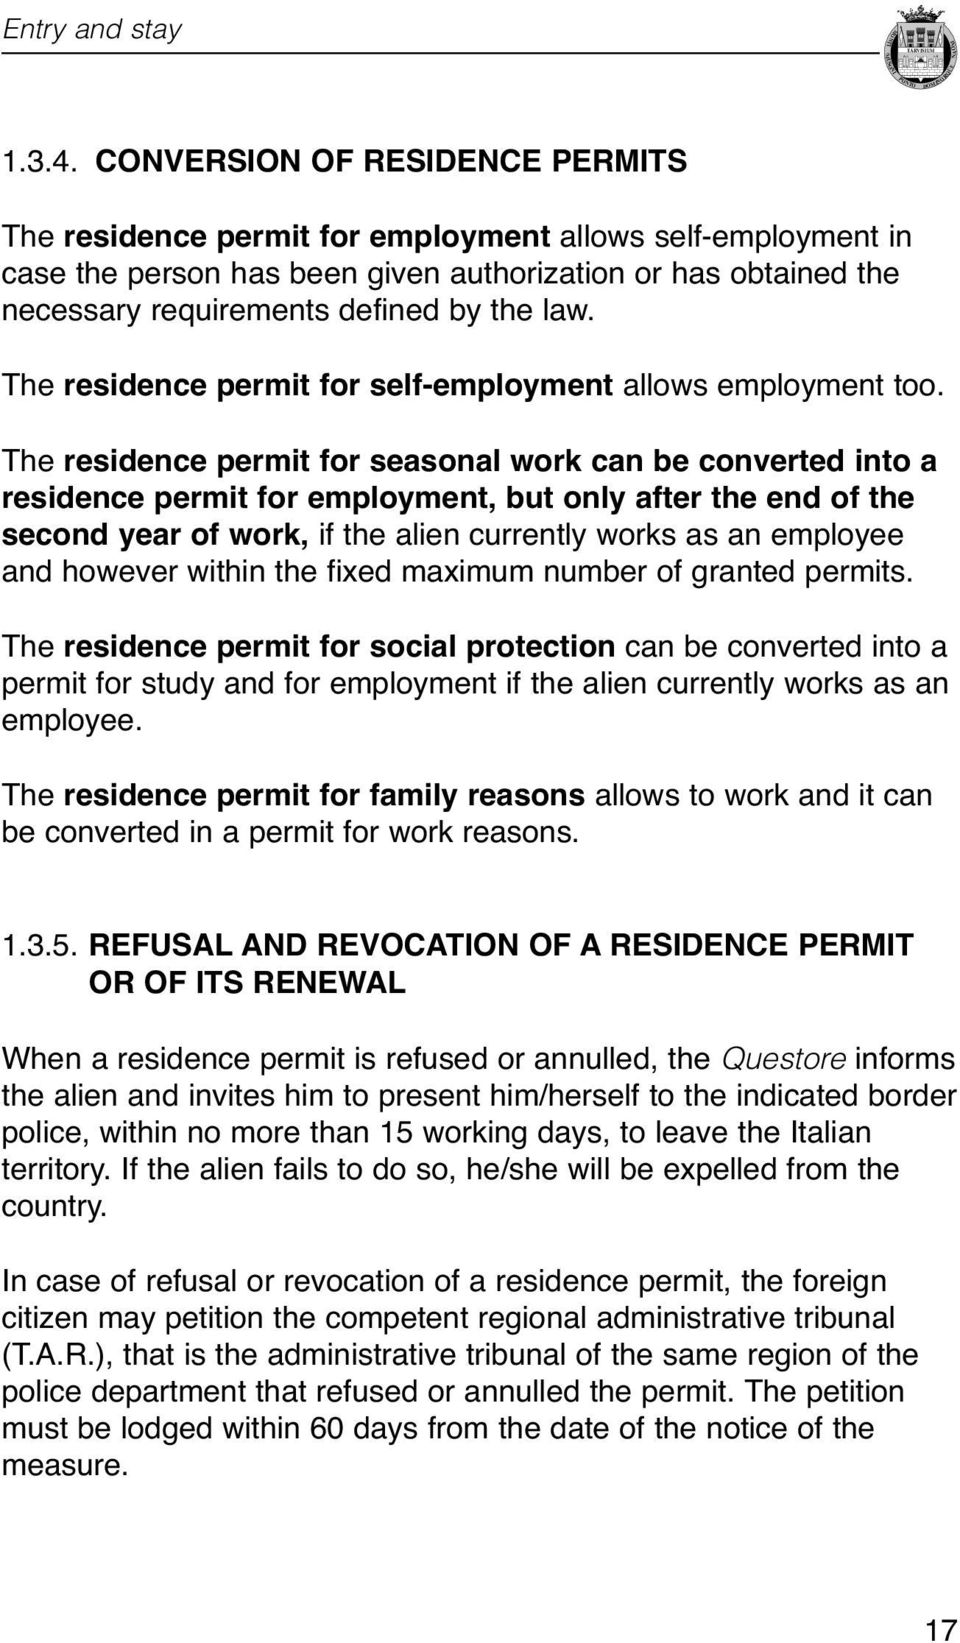 after the end of the second year of work, if the alien currently works as an employee and however within the fixed maximum number of granted permits The residence permit for social protection can be